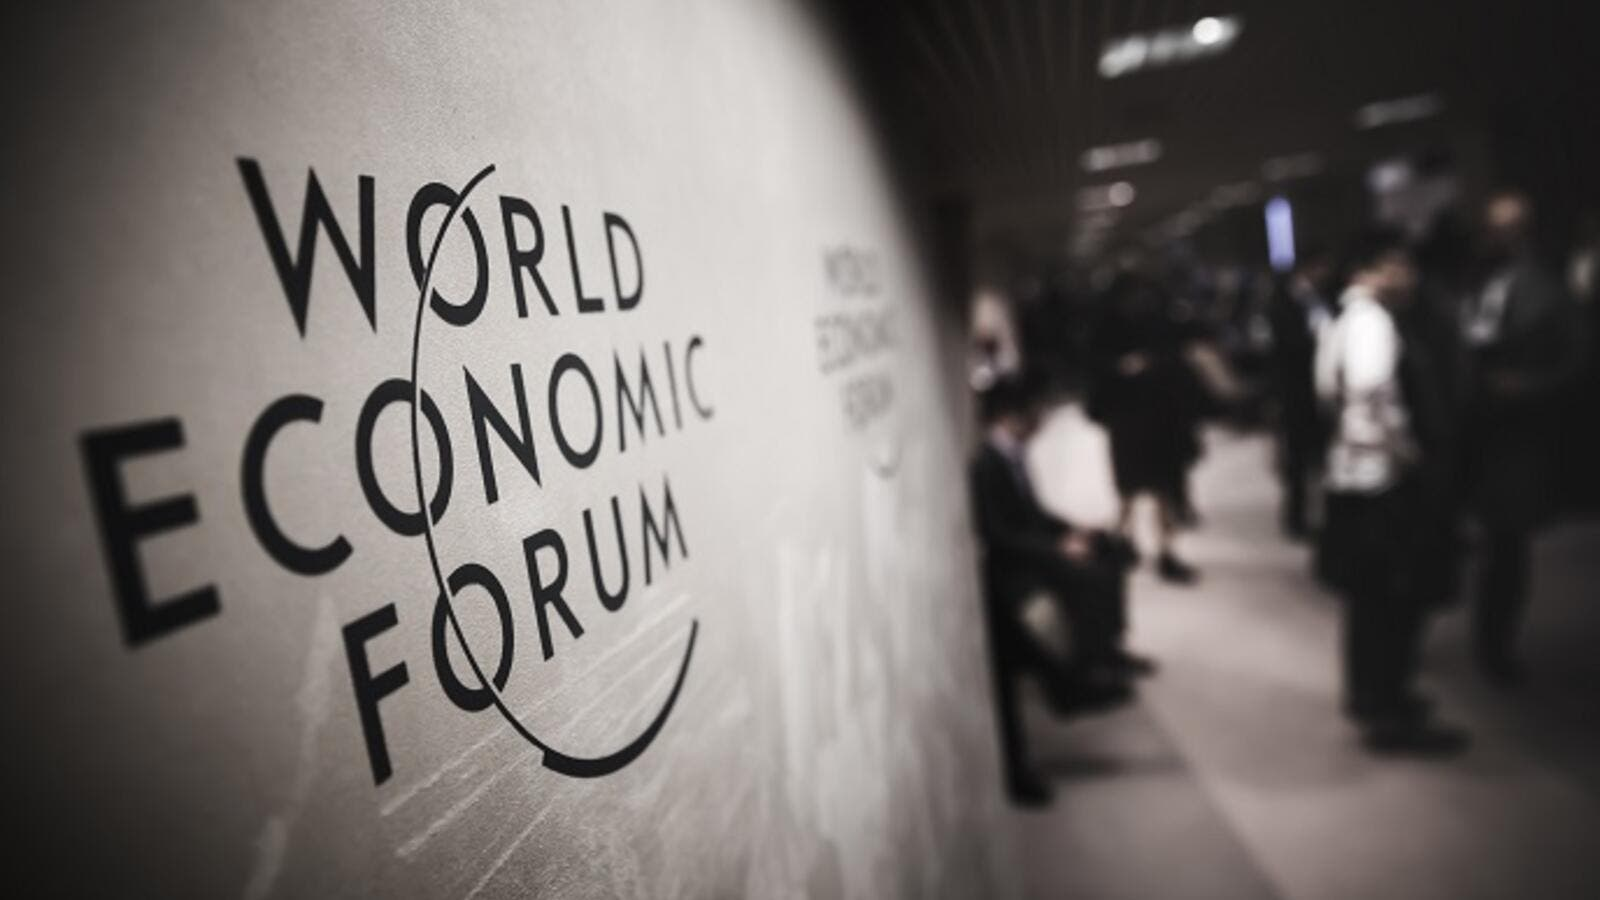 From Bill Gates to Marc Benioff, read on for some of the most notable technologists speaking at the World Economic Forum this year. (Shutterstock)